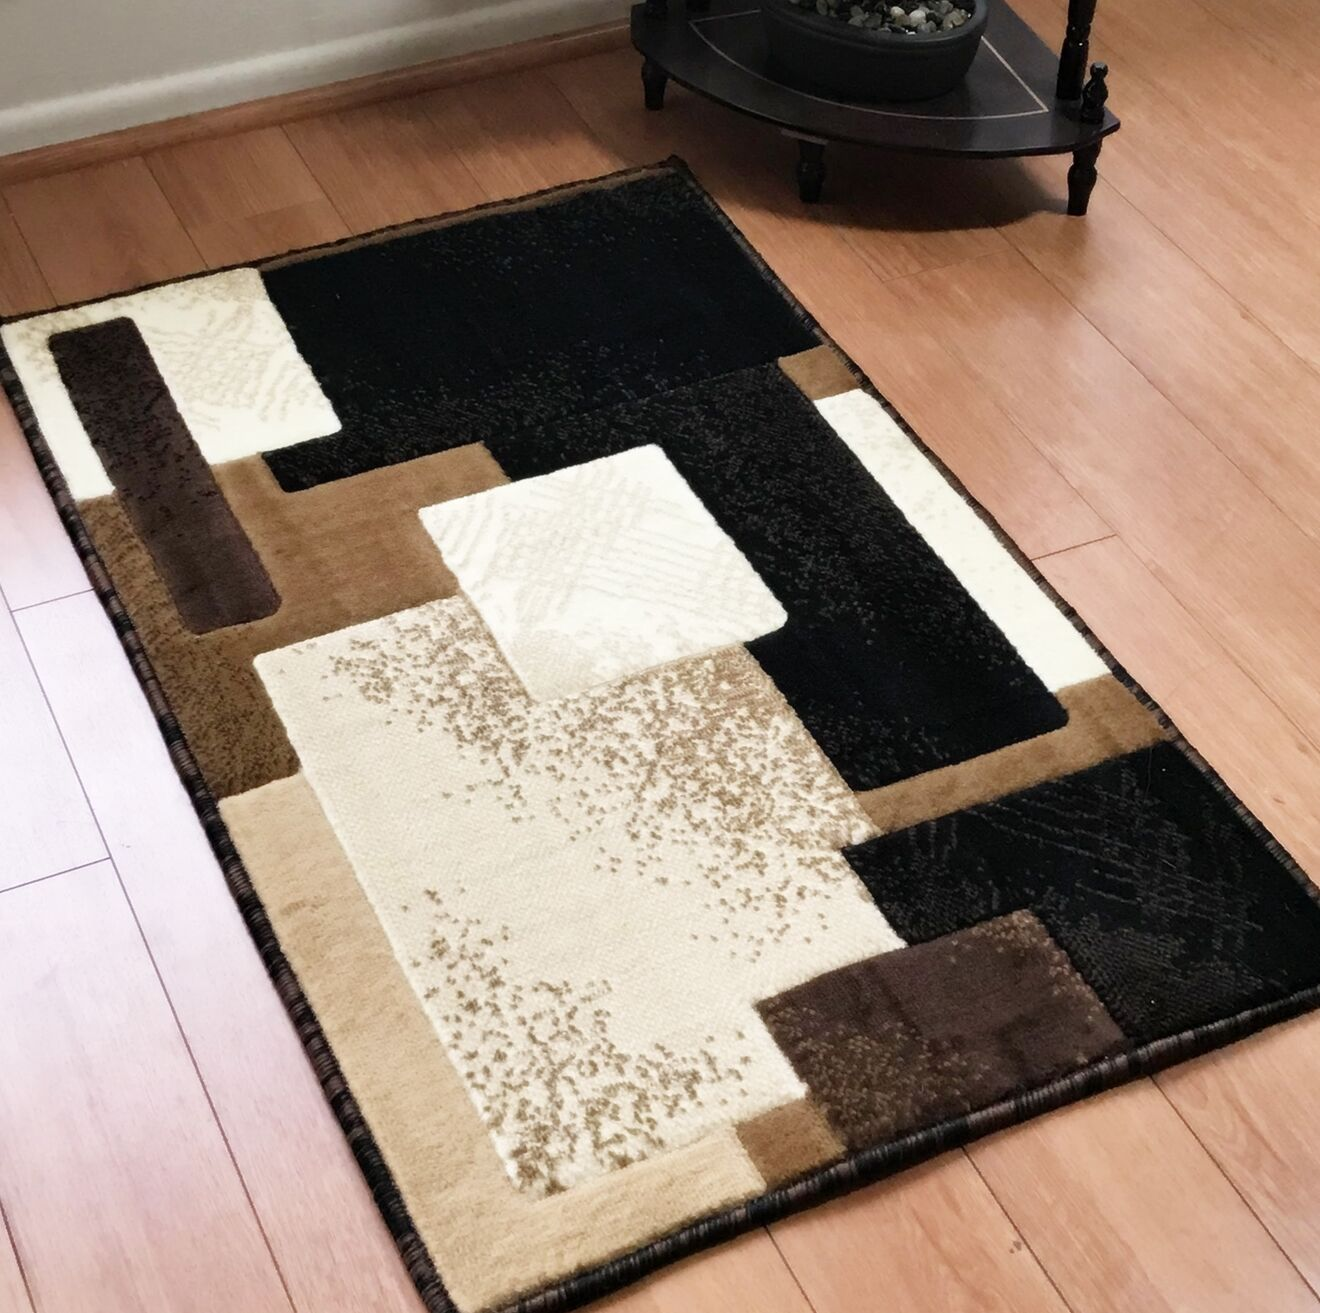 Freshman Traditional Black/Beige Area Rug Rug Size: Rectangle 4' x 6'